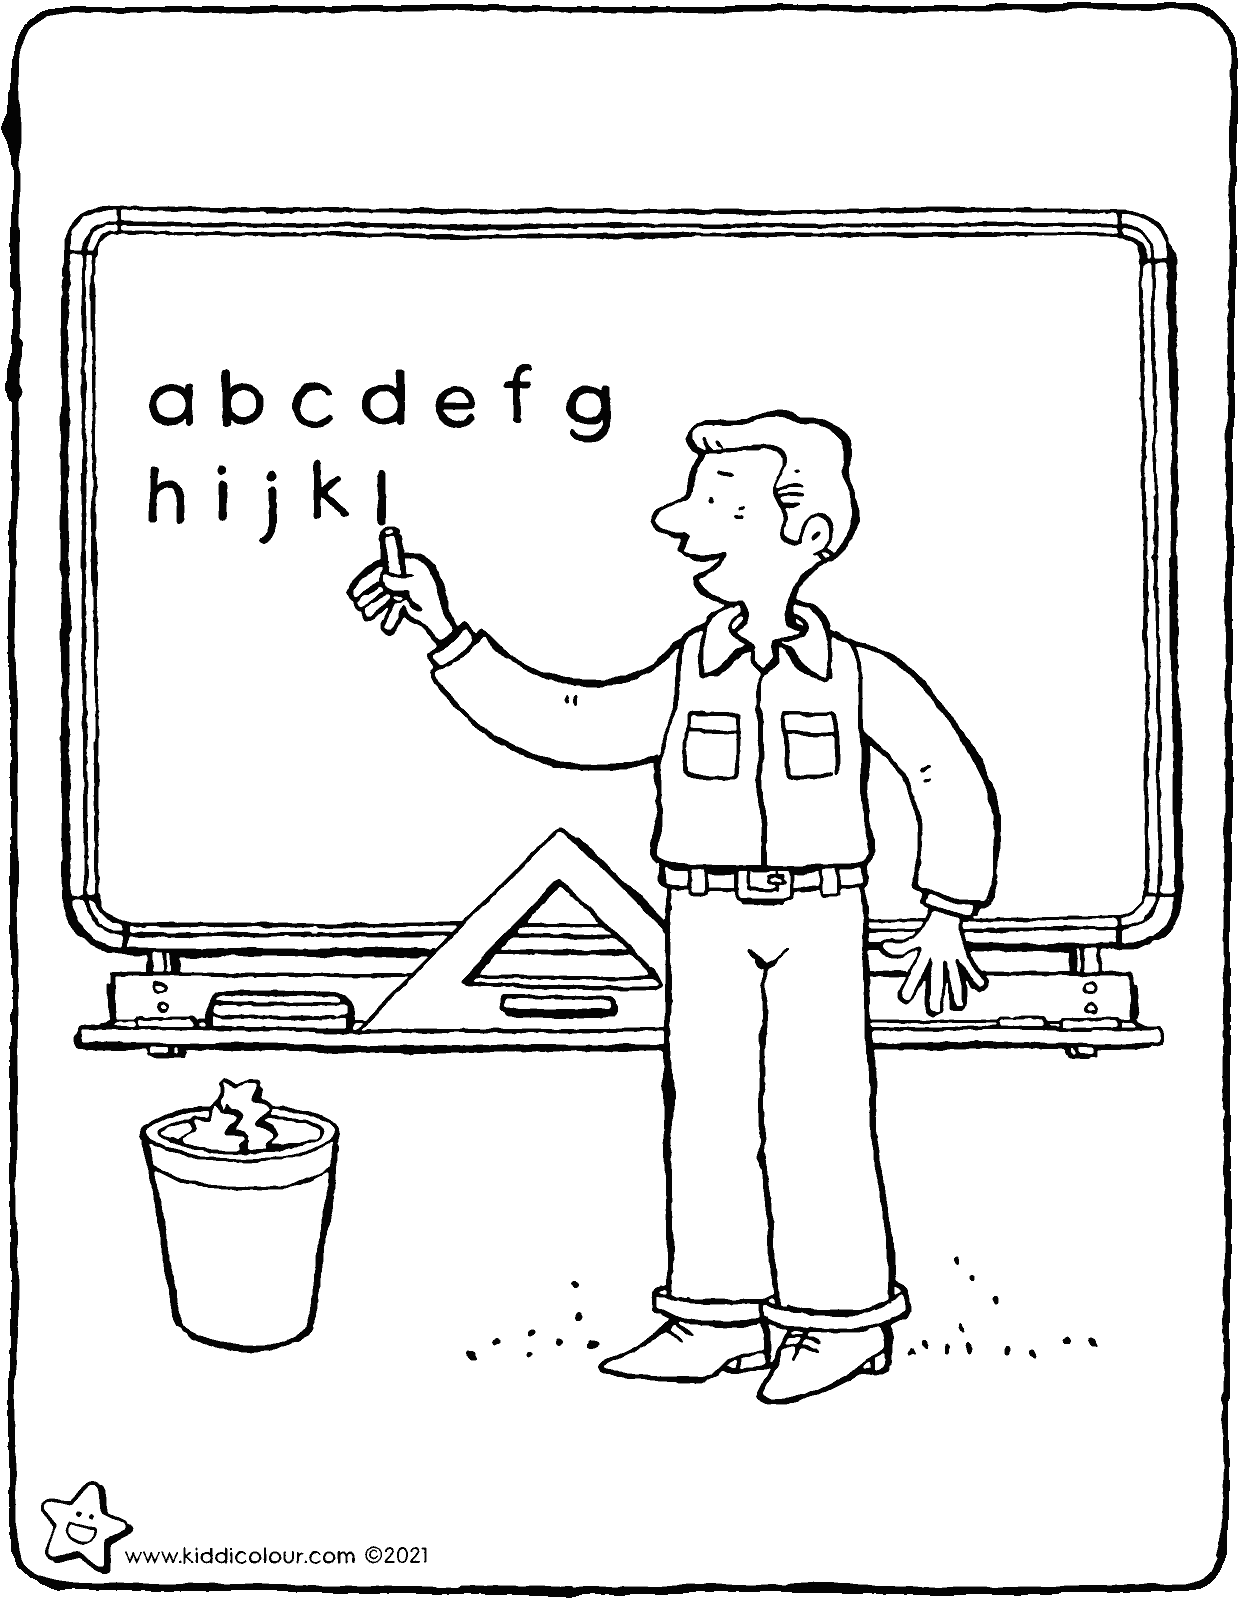 teacher in front of the blackboard colouring page drawing picture 01V